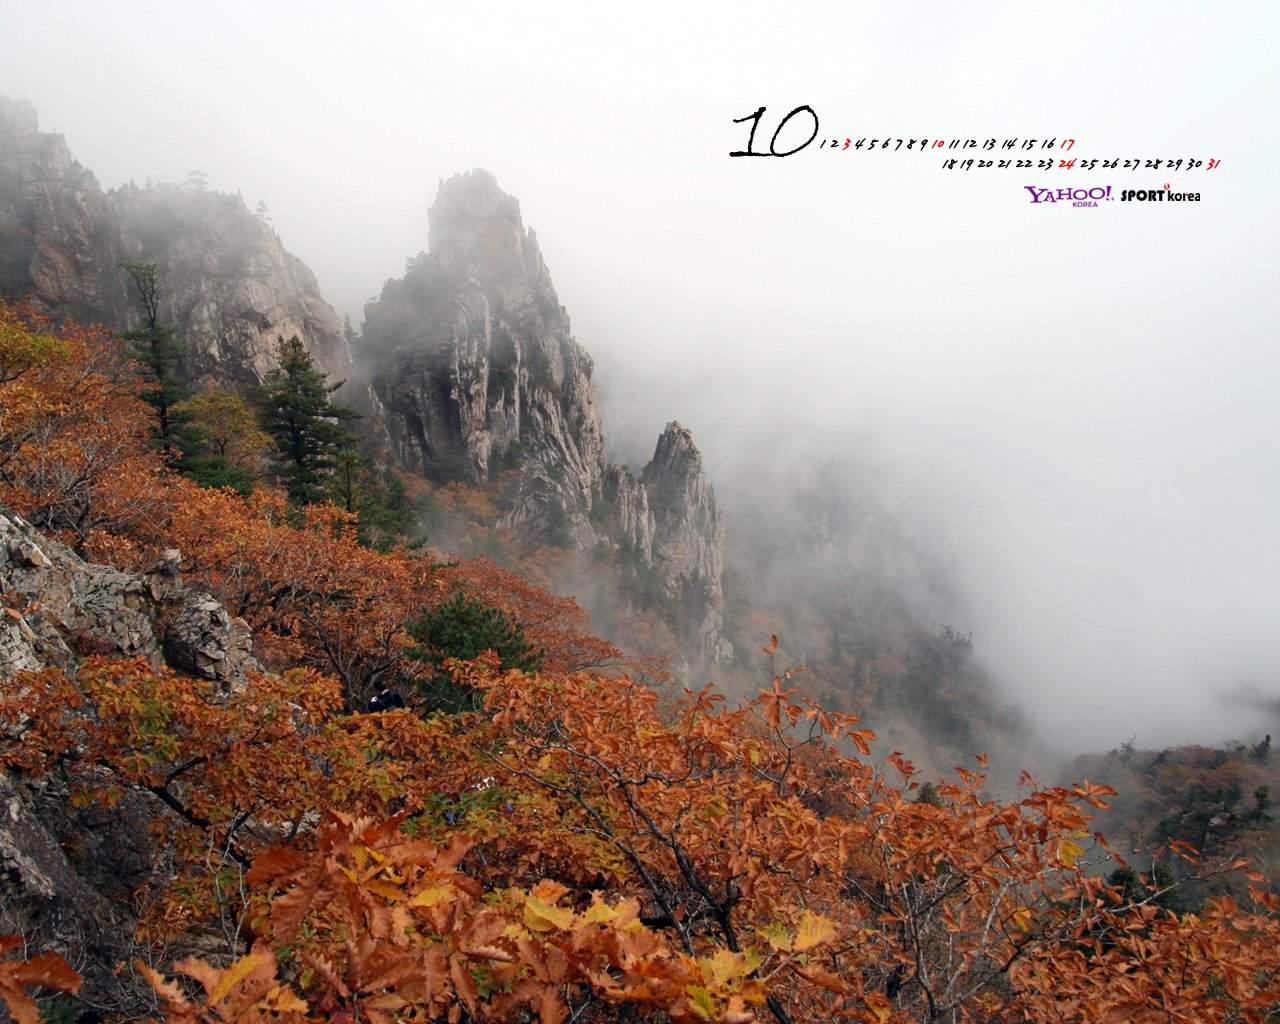 YAHOO October Calendar Wallpaper 15855